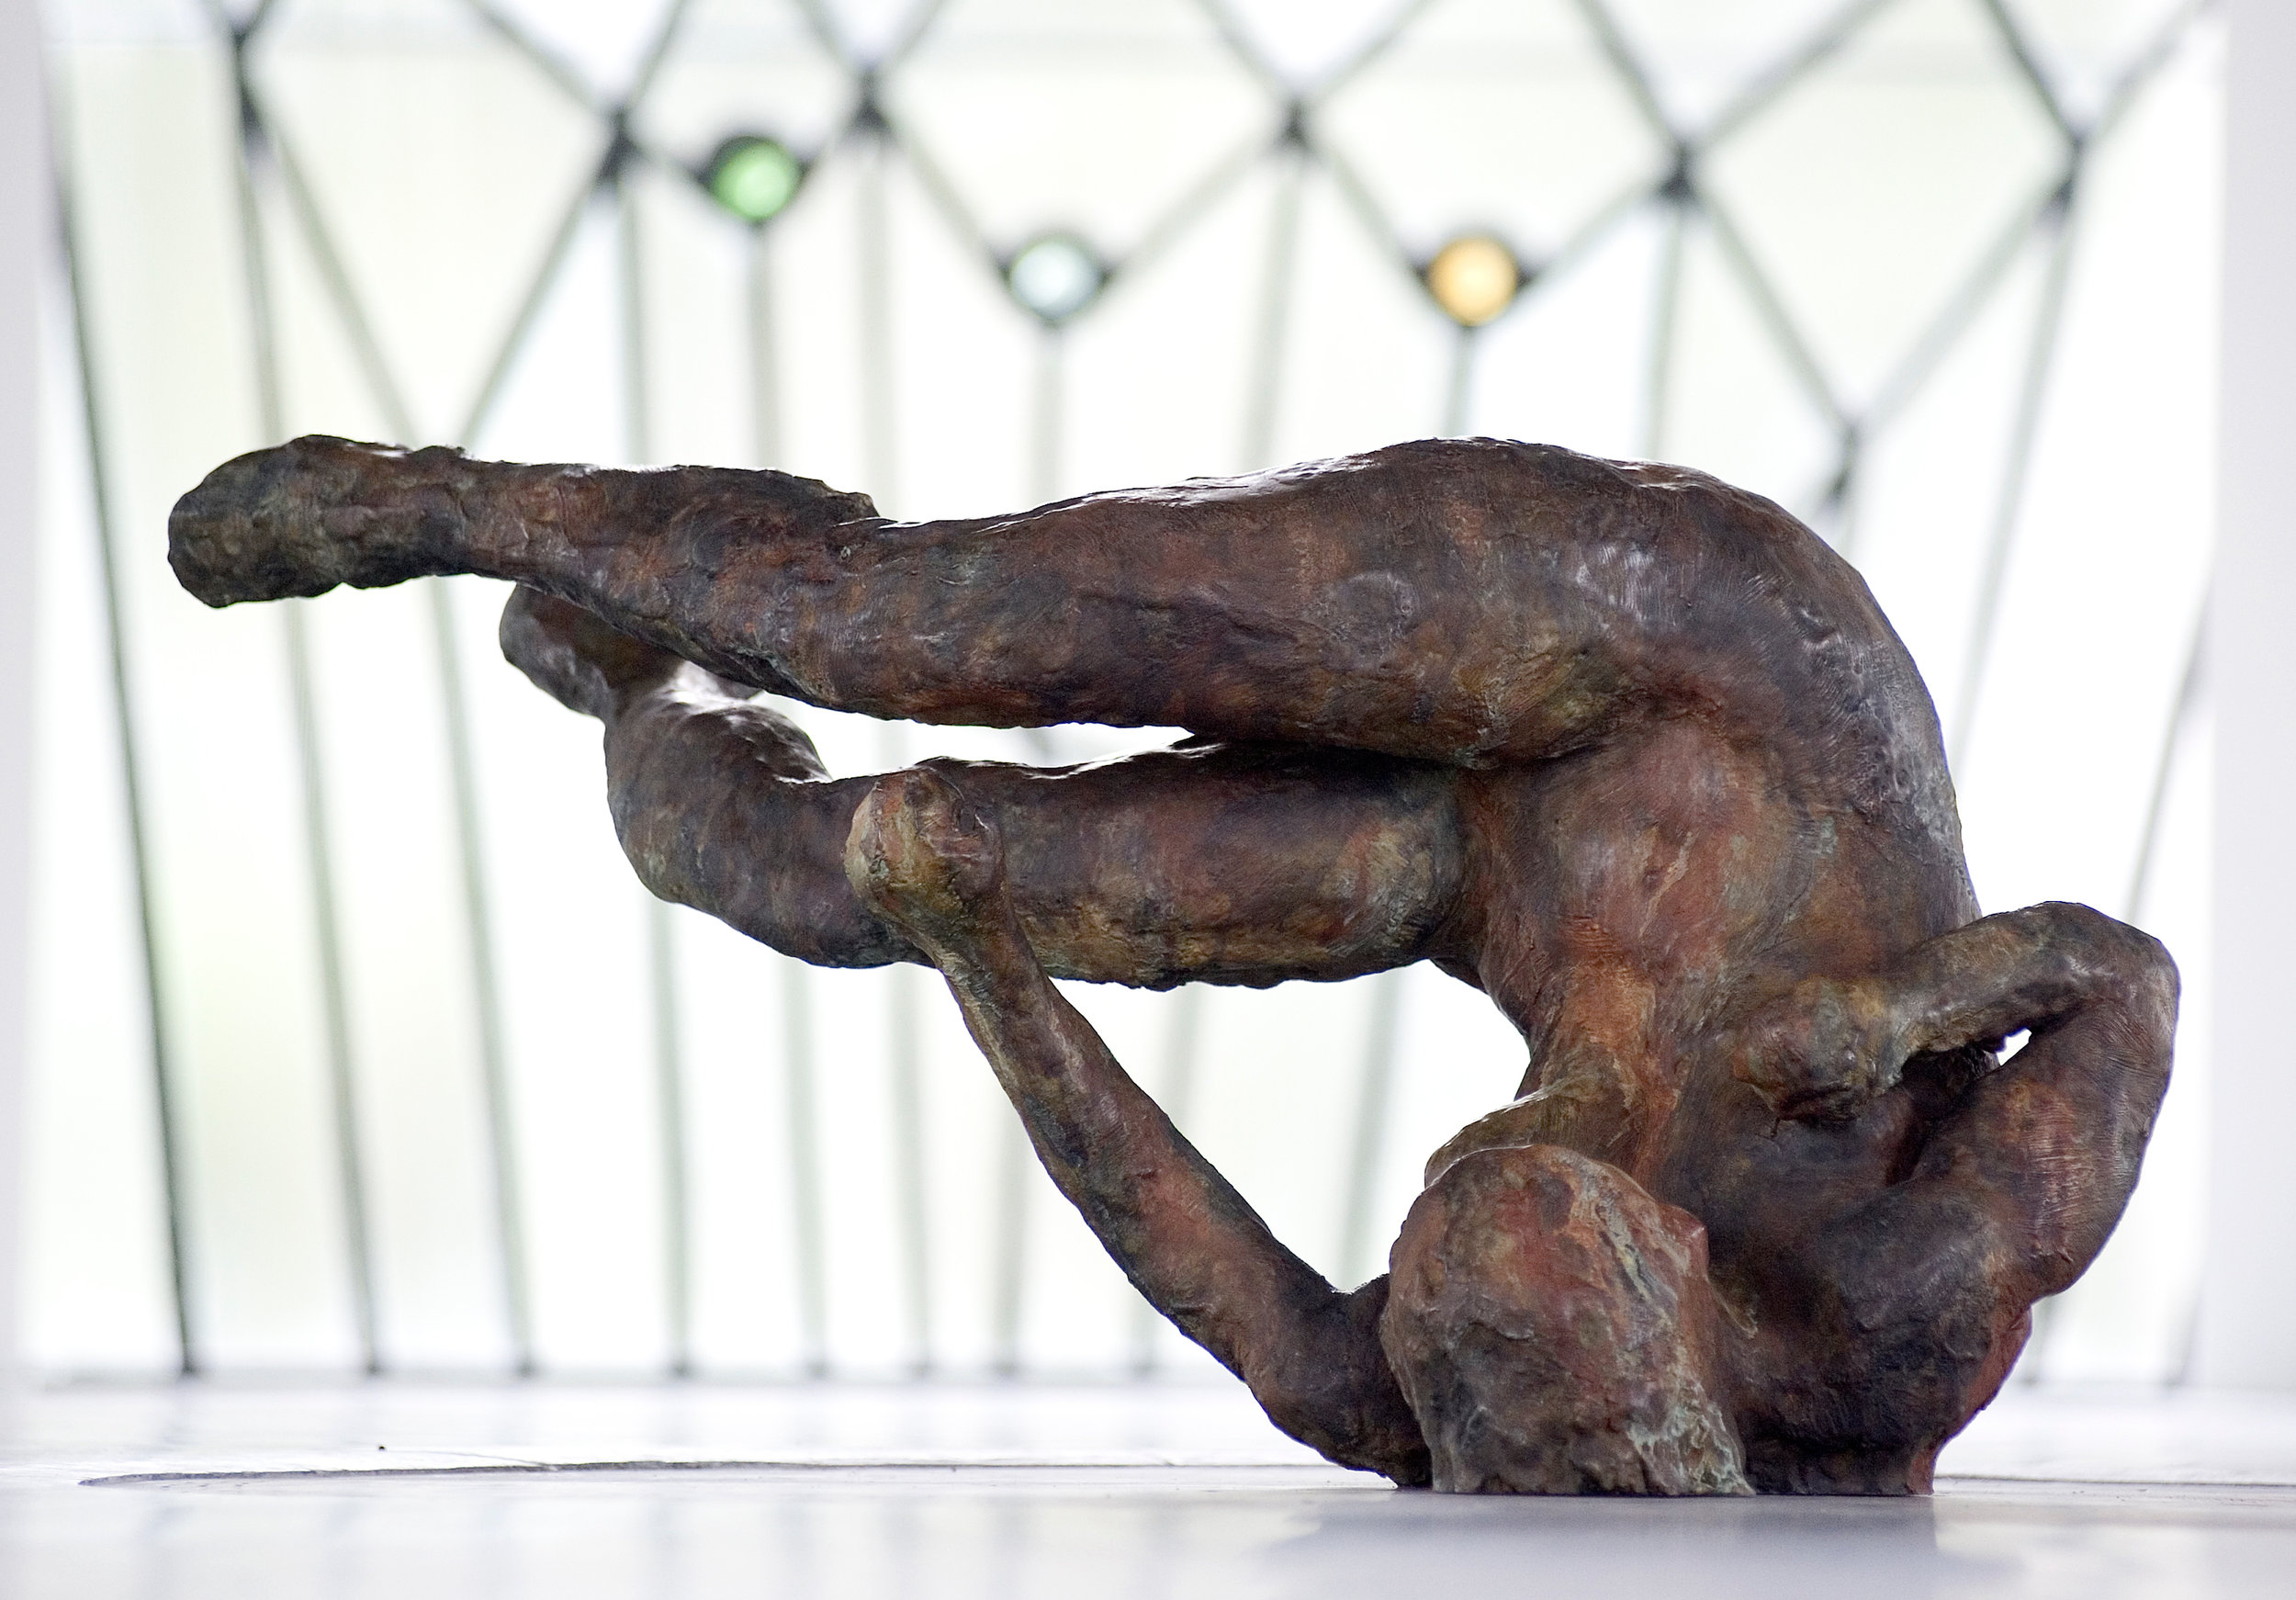 Tumbling Woman II, 2007, Bronze, 25 1/2 x 47 1/2 x 26 in (Installed at Bohm Chapel, Jablonka Gallerie)